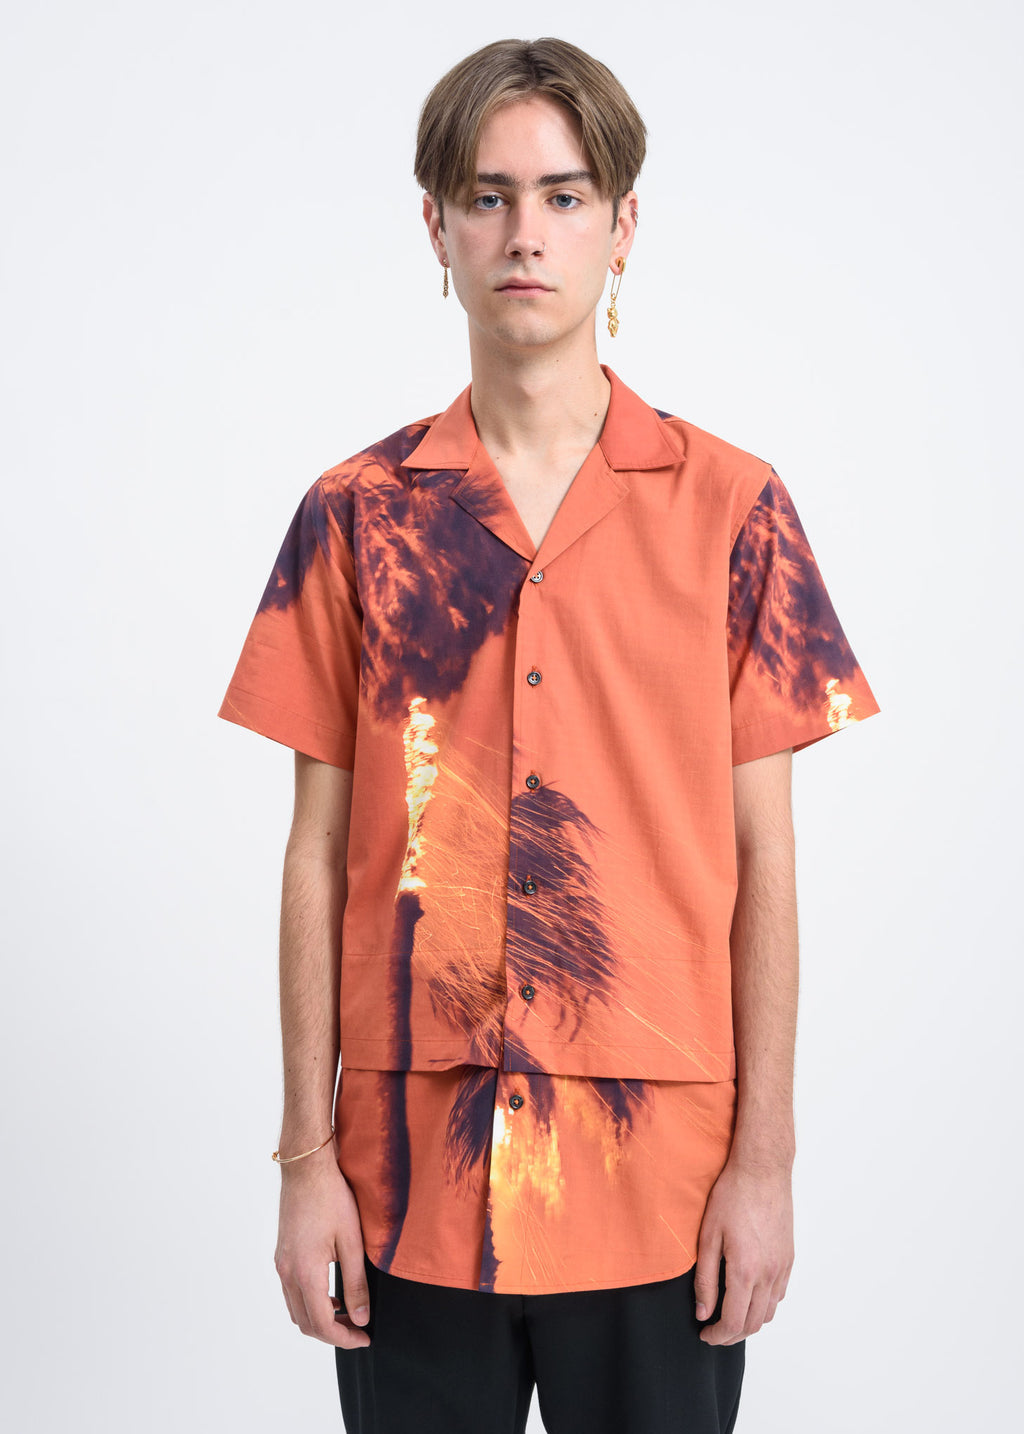 Palmier Shirt w/ Burning Print